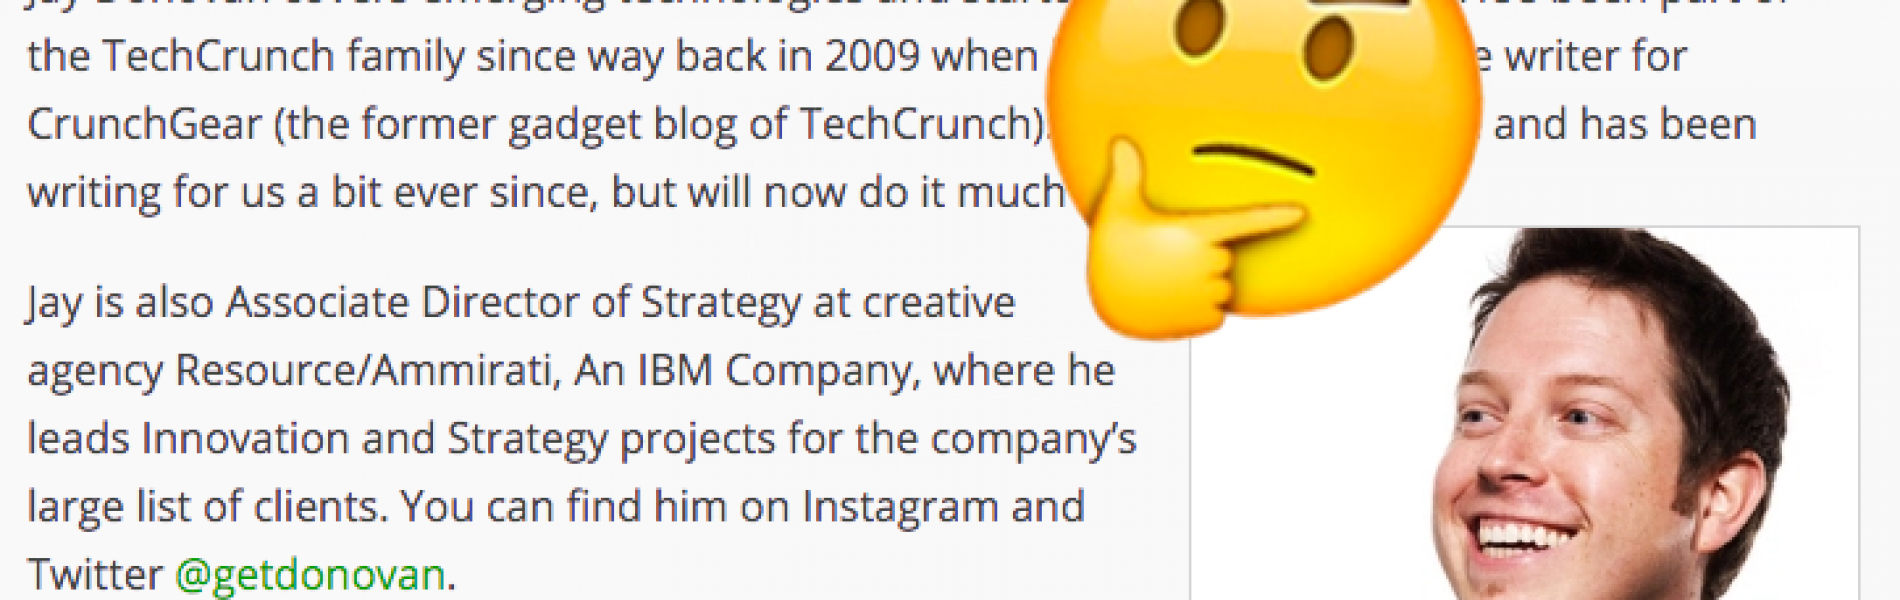 TechCrunch Validates Our Existence by hiring a Tech Advertiser as a Writer